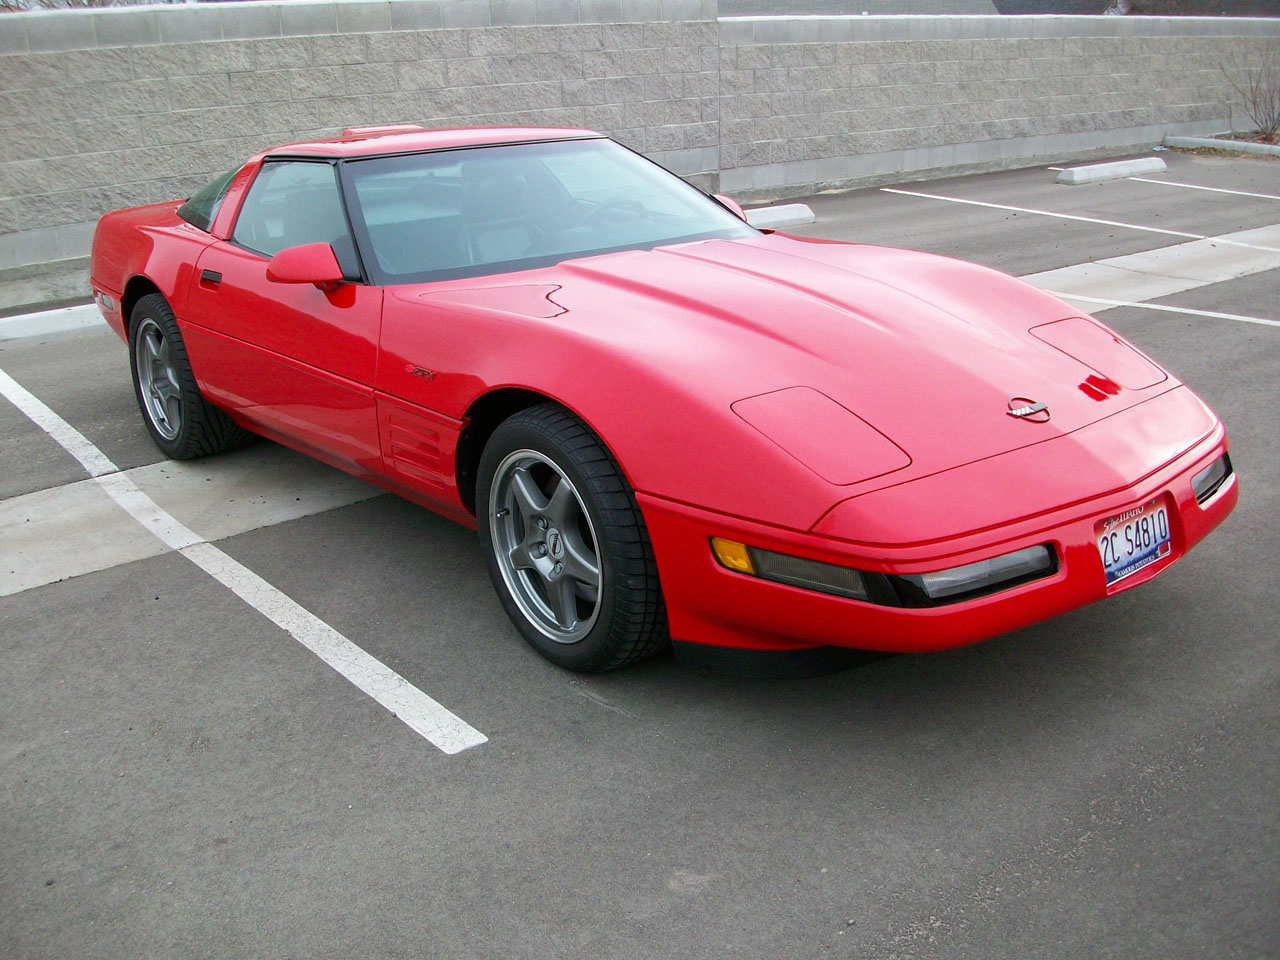 1 4 Mile Times >> 1991 Chevrolet Corvette ZR-1 1/4 mile trap speeds 0-60 ...